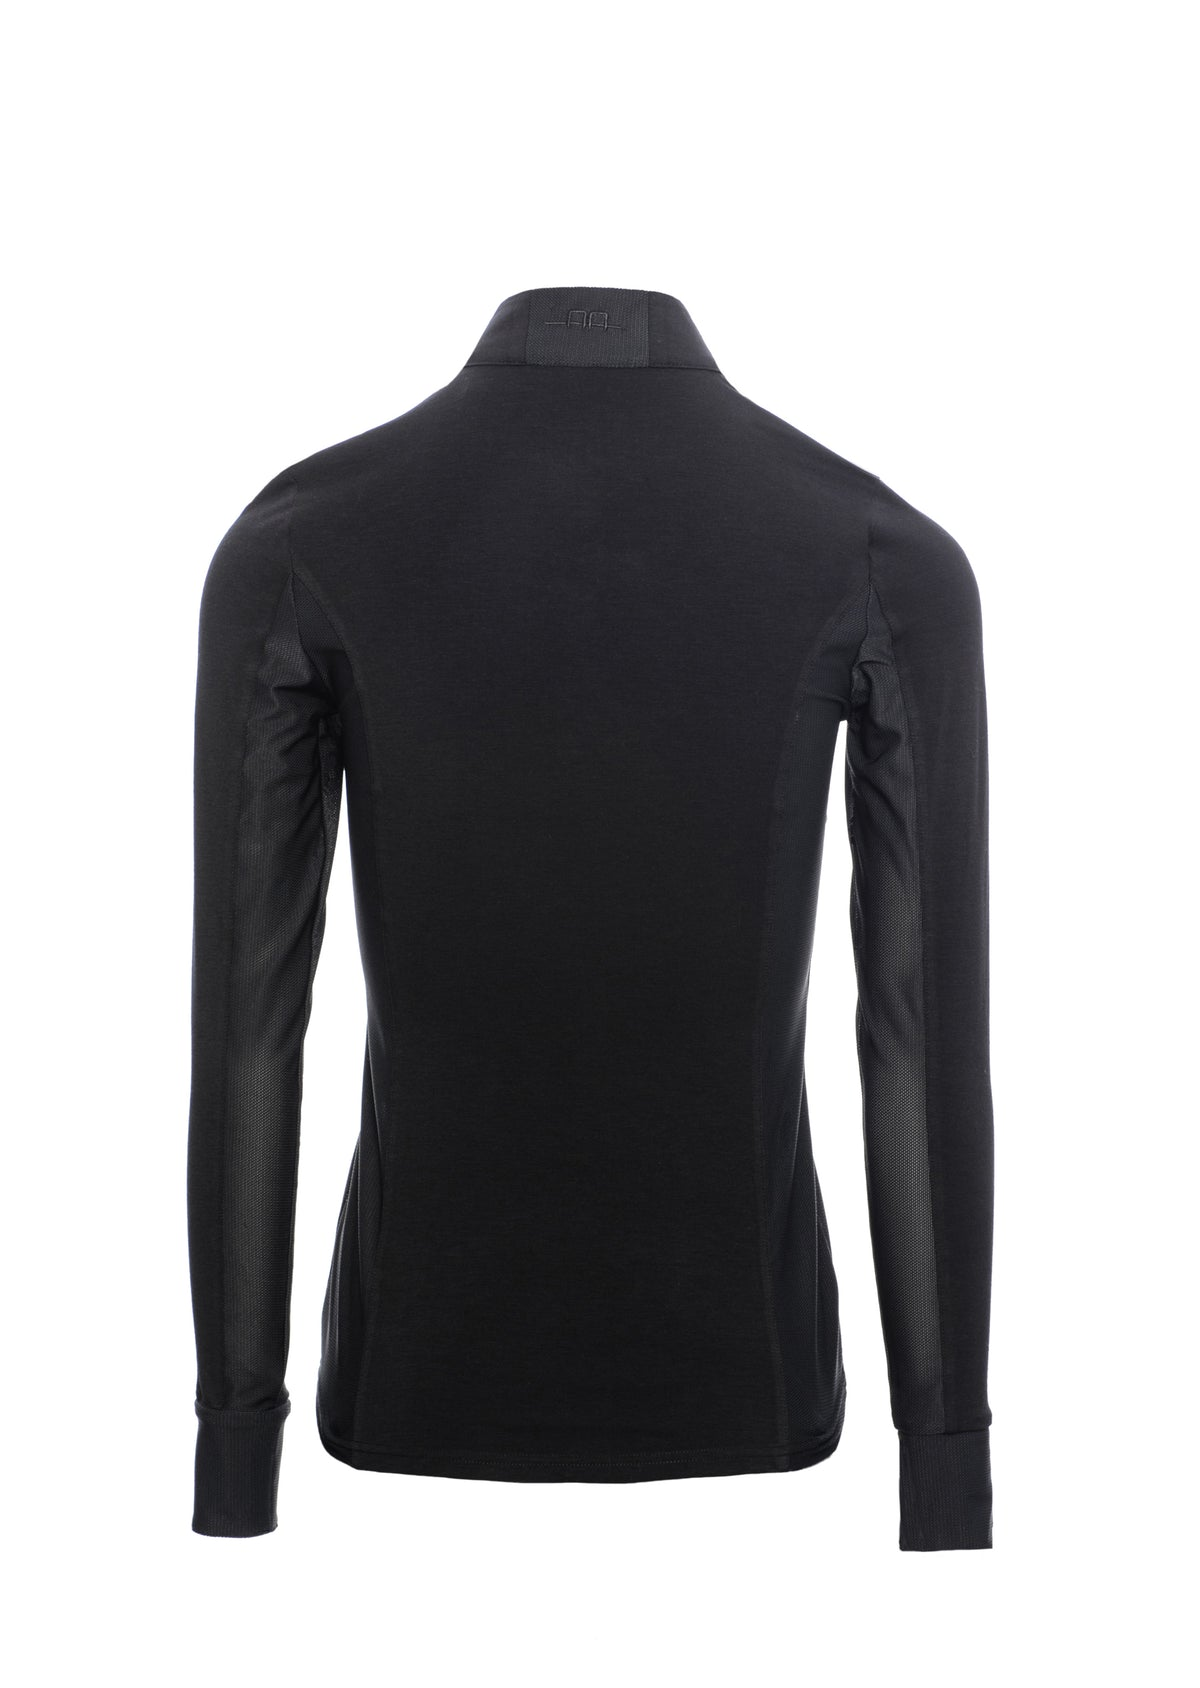 A great update to the Spring version, the Alessandro Albanese CleanCool Half Zip Top  has a lightweight fabric with maximum movement, great for training and travel.  Super luxe handfeel!  100% CleanCool Polyester  CleanCool Fabric has unique antibacterial and cooling properties  Quick moisture absorbing and quick dry  Luxurious breathable mesh inserts • Machine washable